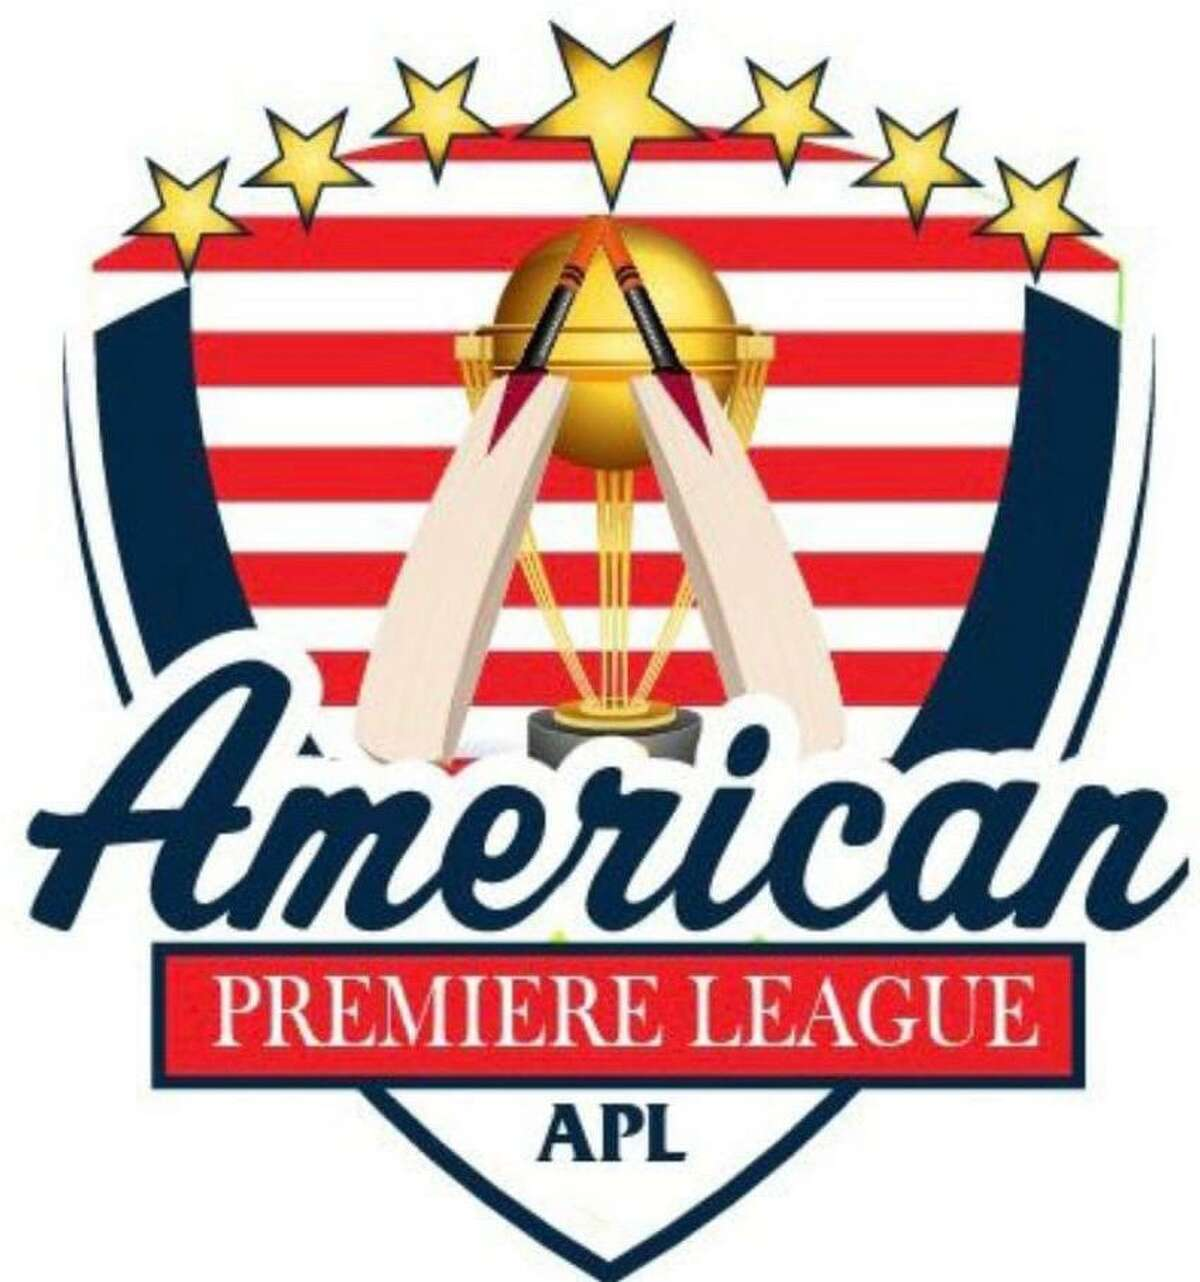 The logo for the American Premiere League